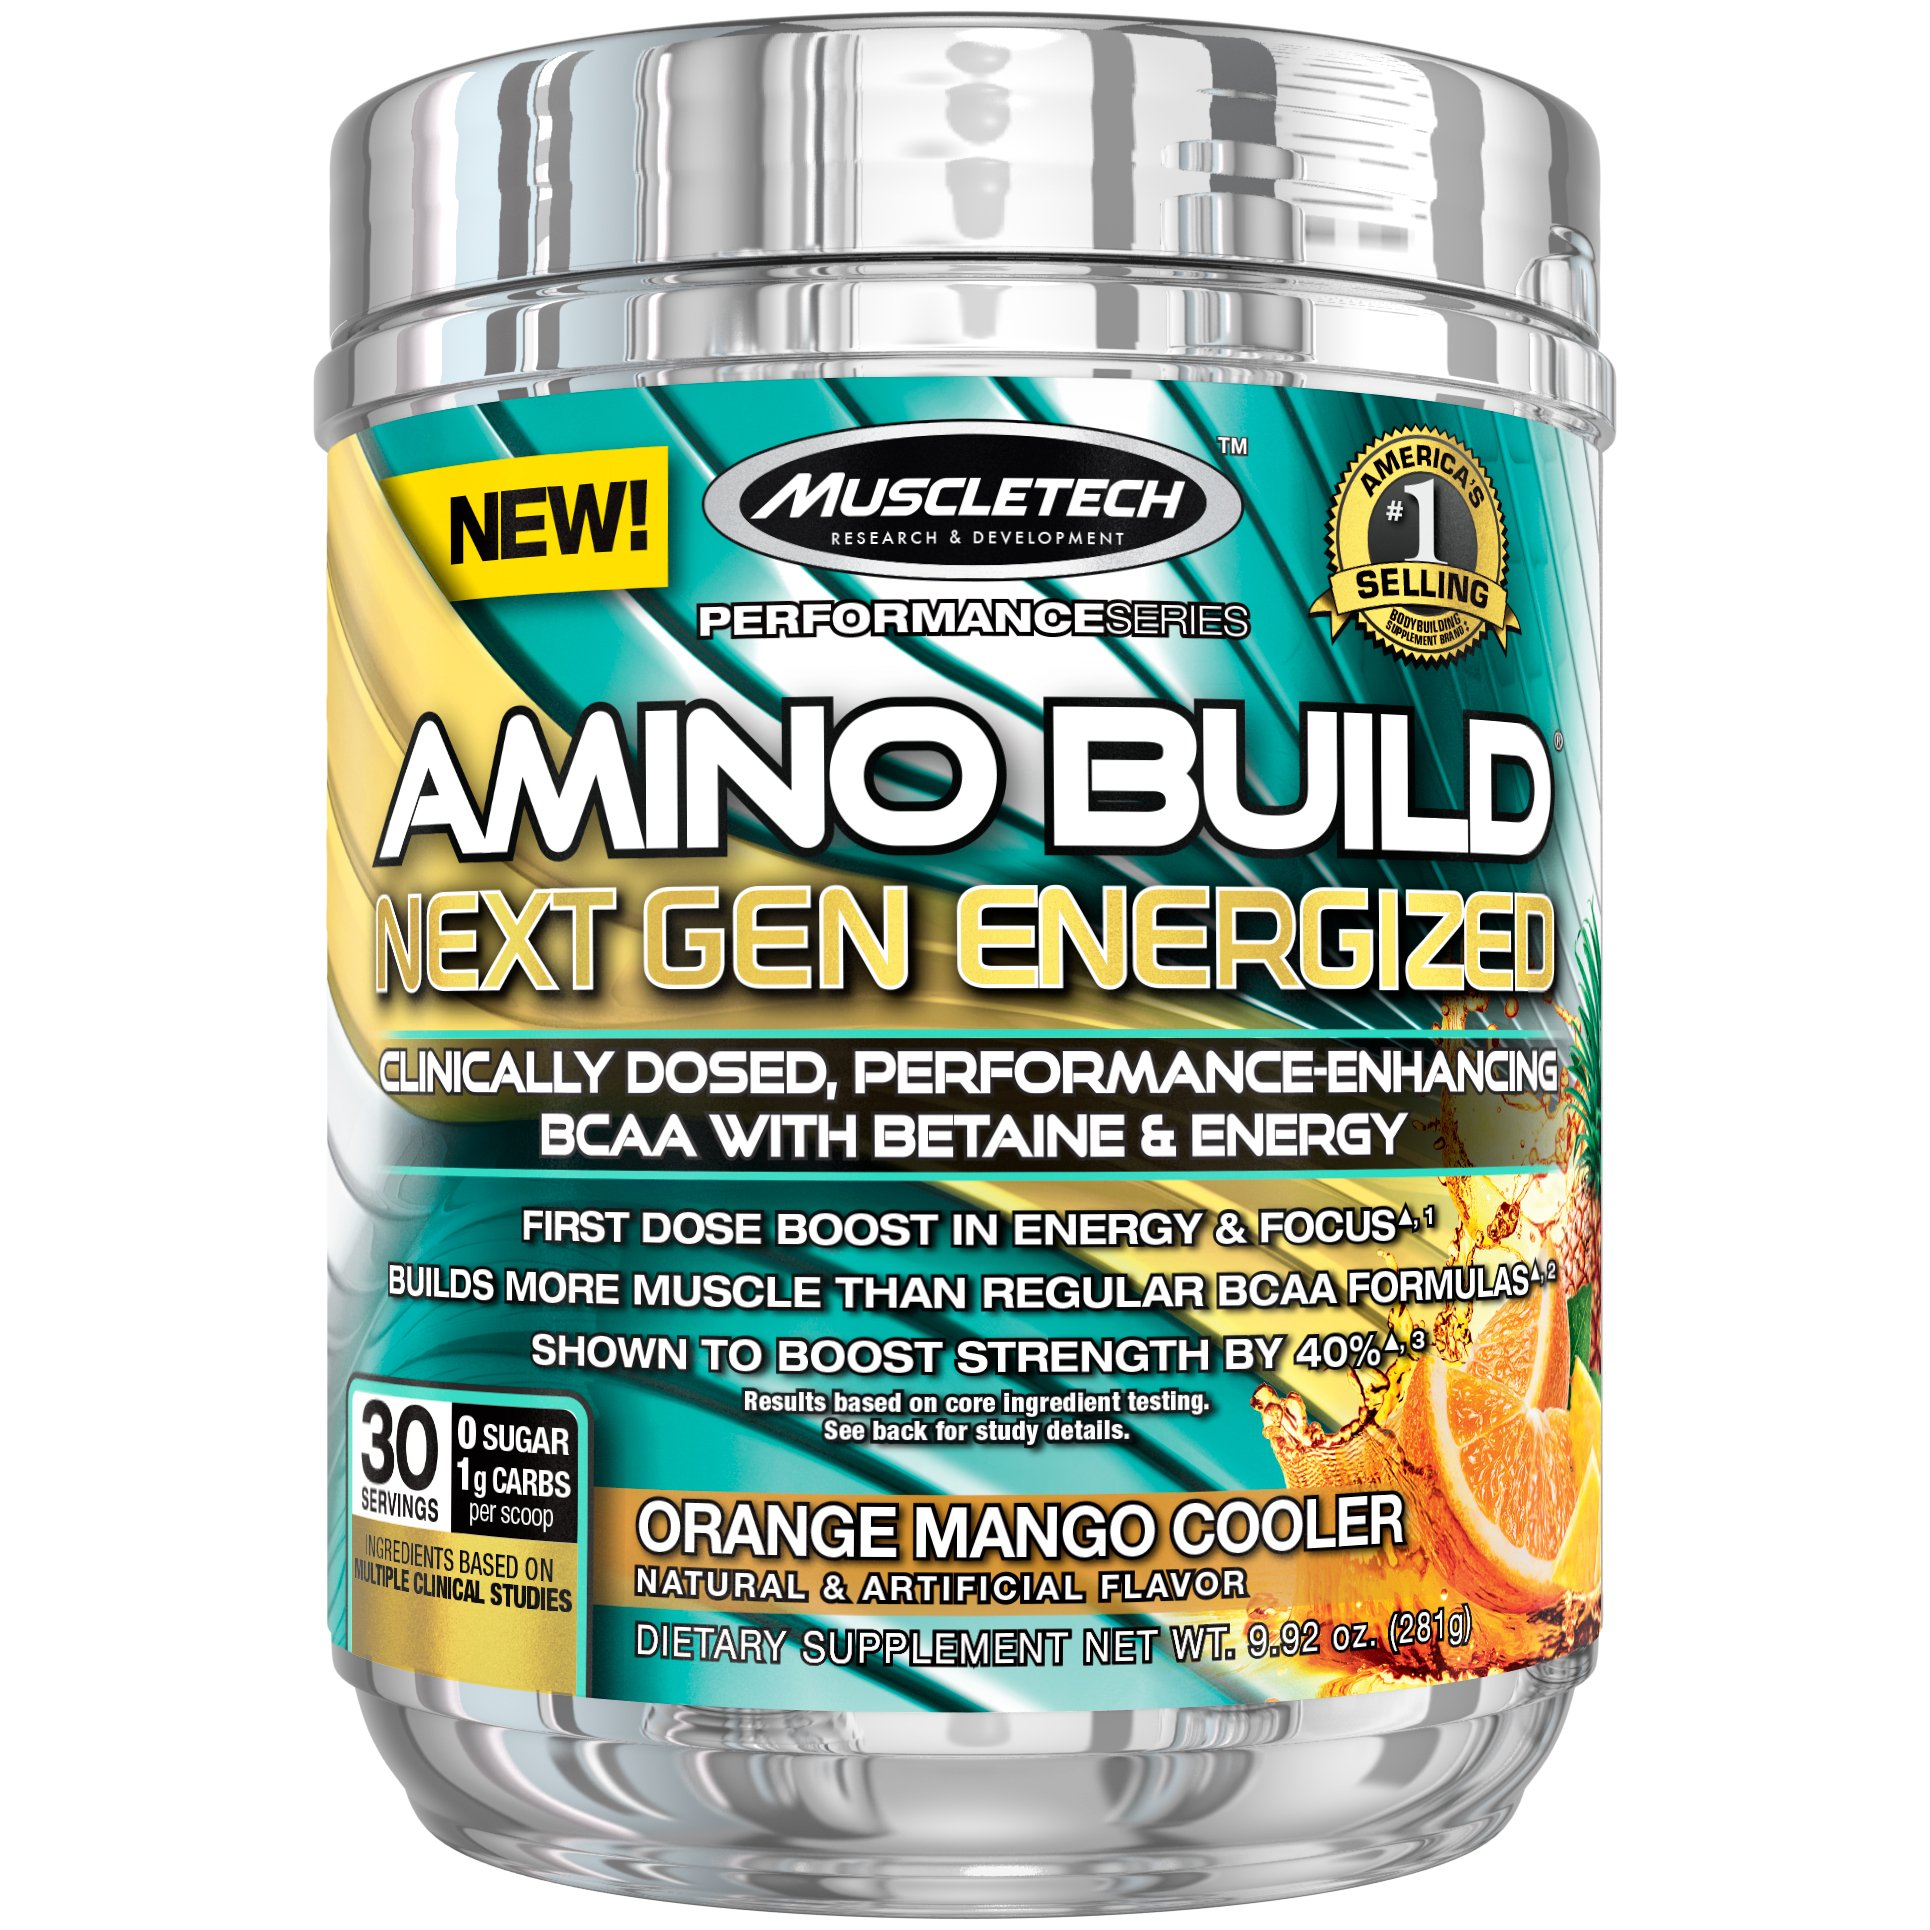 MuscleTech Amino Build Next Gen Energy Supplement, Formulated with BCAA Amino Acids, Betaine, Vitamin B12 & B6 for Muscle Strength & Endurance, Orange Mango Cooler, 30 Servings (282g)